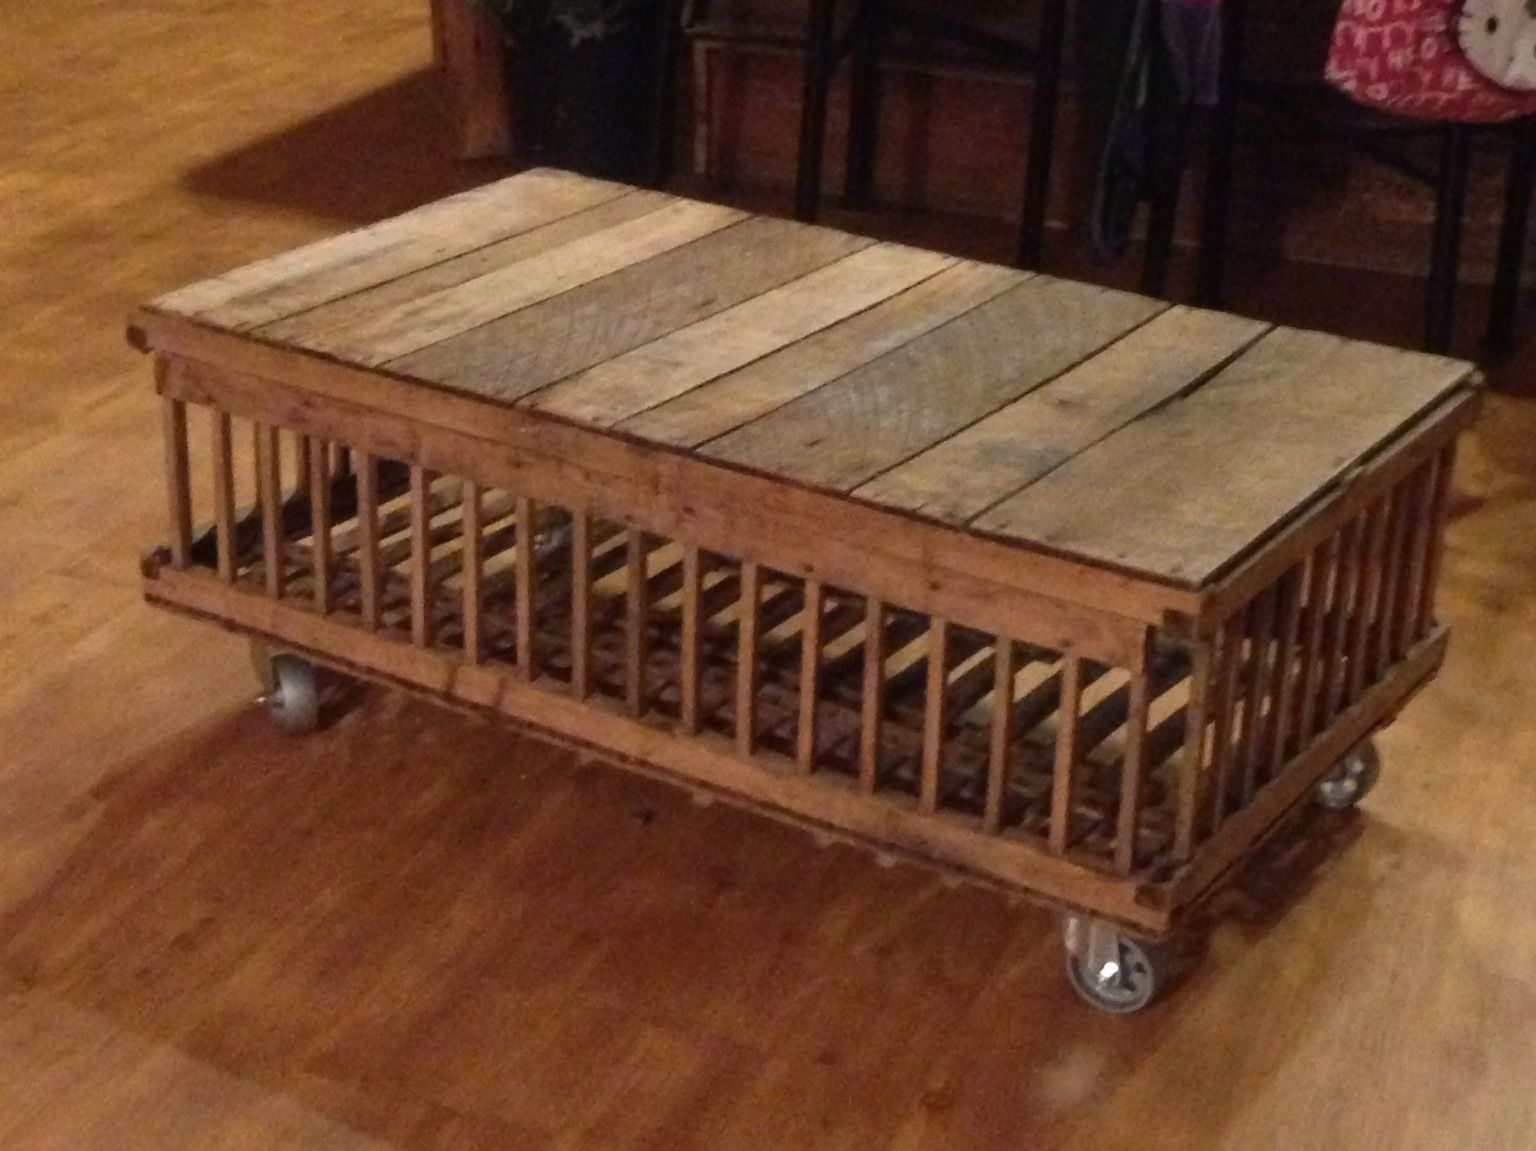 My coffee table made out of an old chicken crate for for Coffee table made out of wooden crates